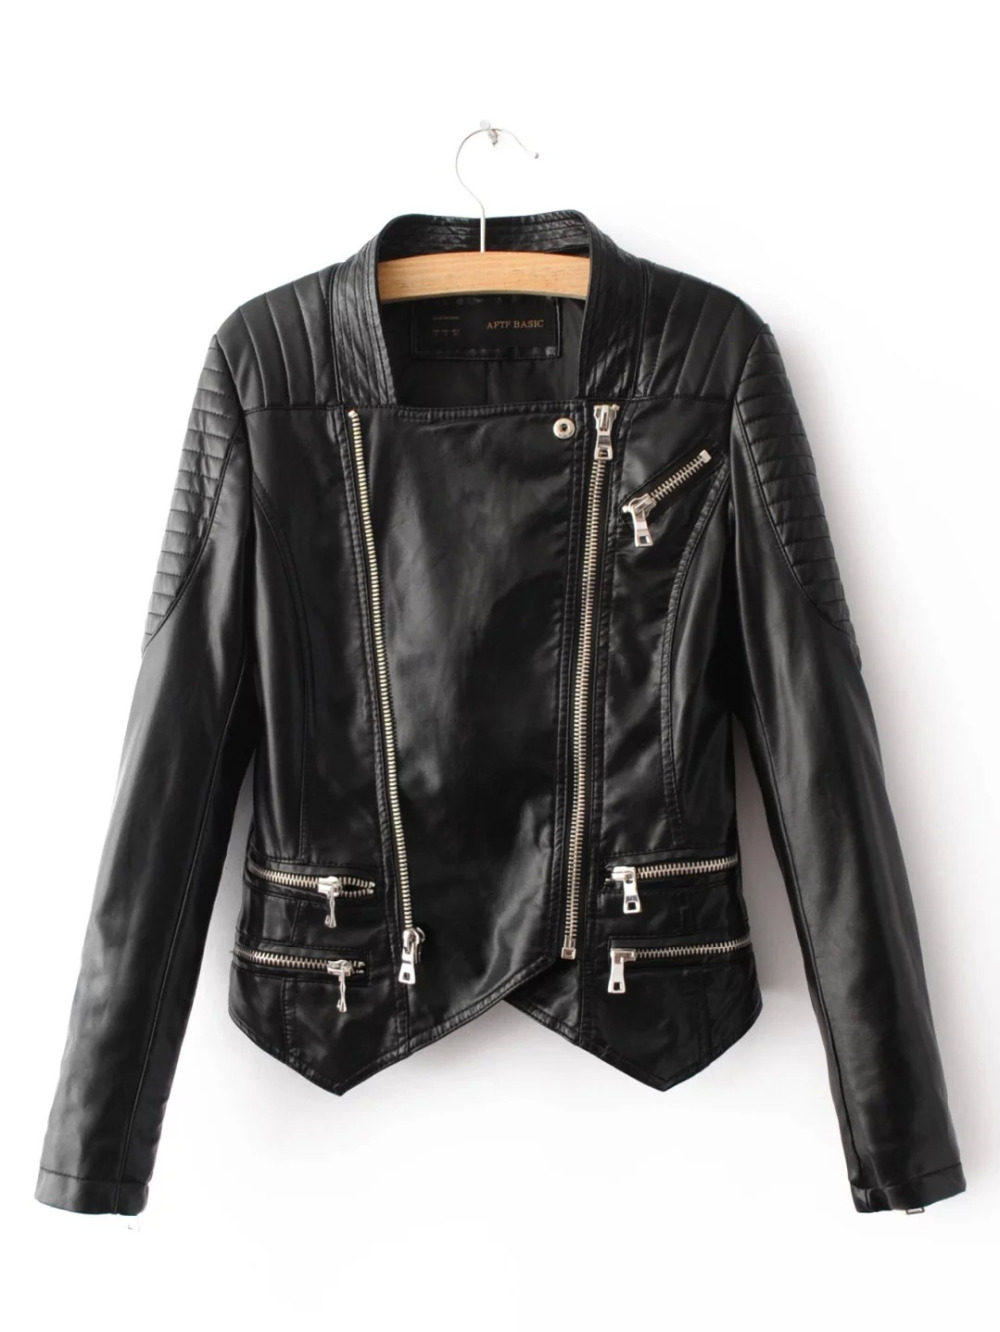 Compare Prices on Leather Jacket Sale- Online Shopping/Buy Low ...